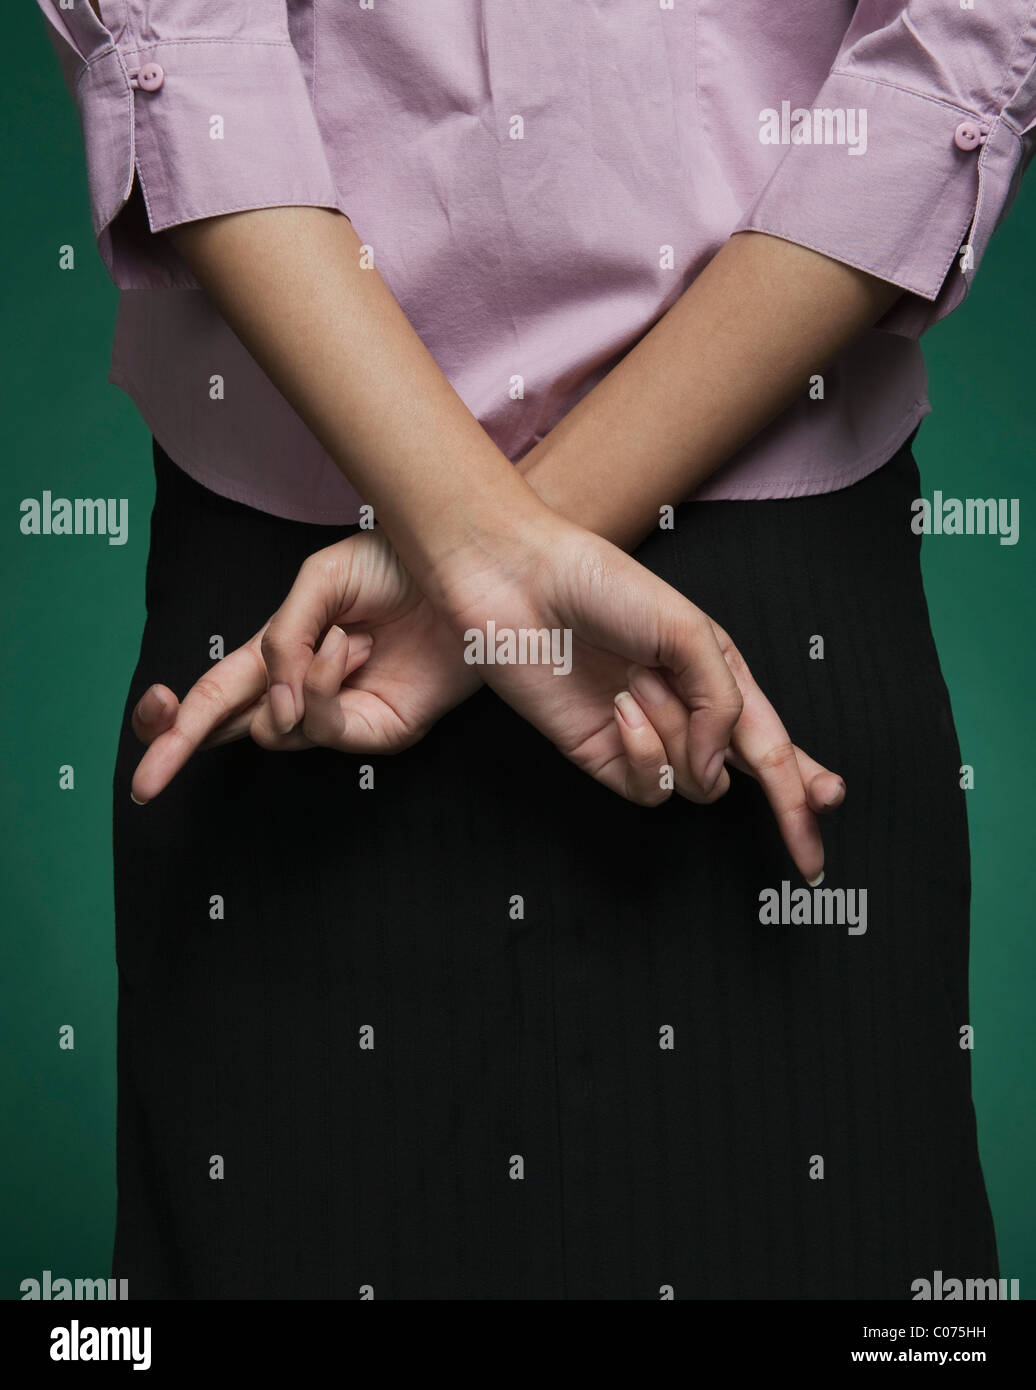 Mid section view of a businesswoman with fingers crossed behind her back - Stock Image